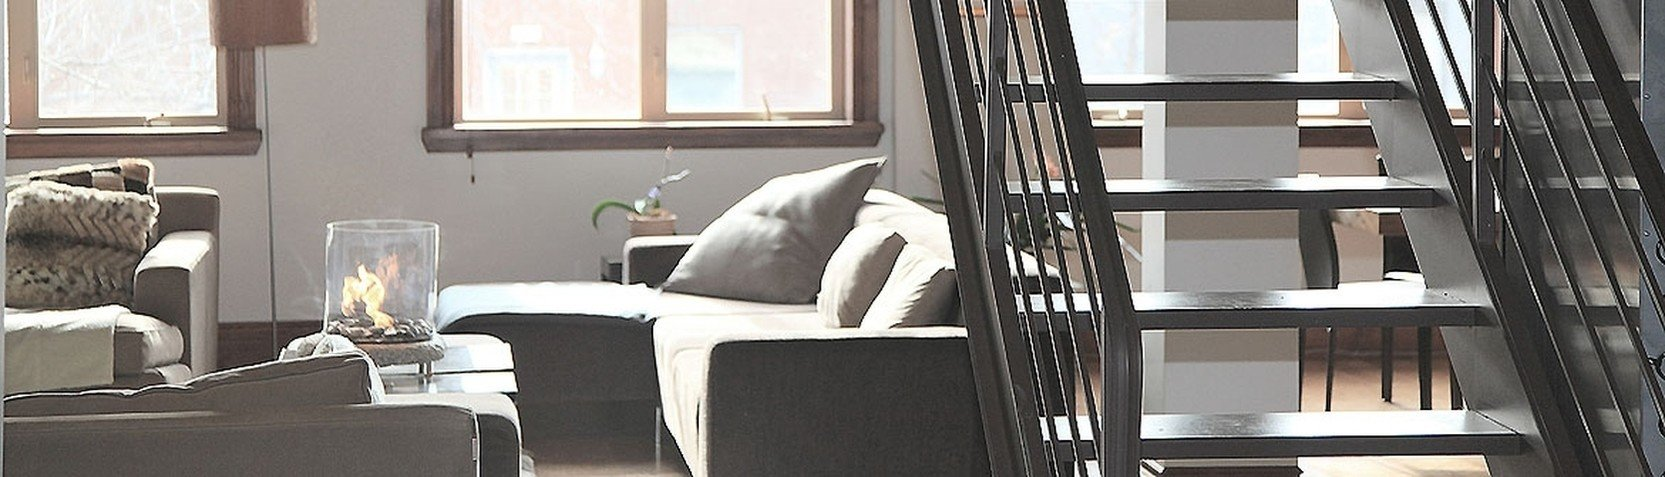 Interior Styles - Industrial Style